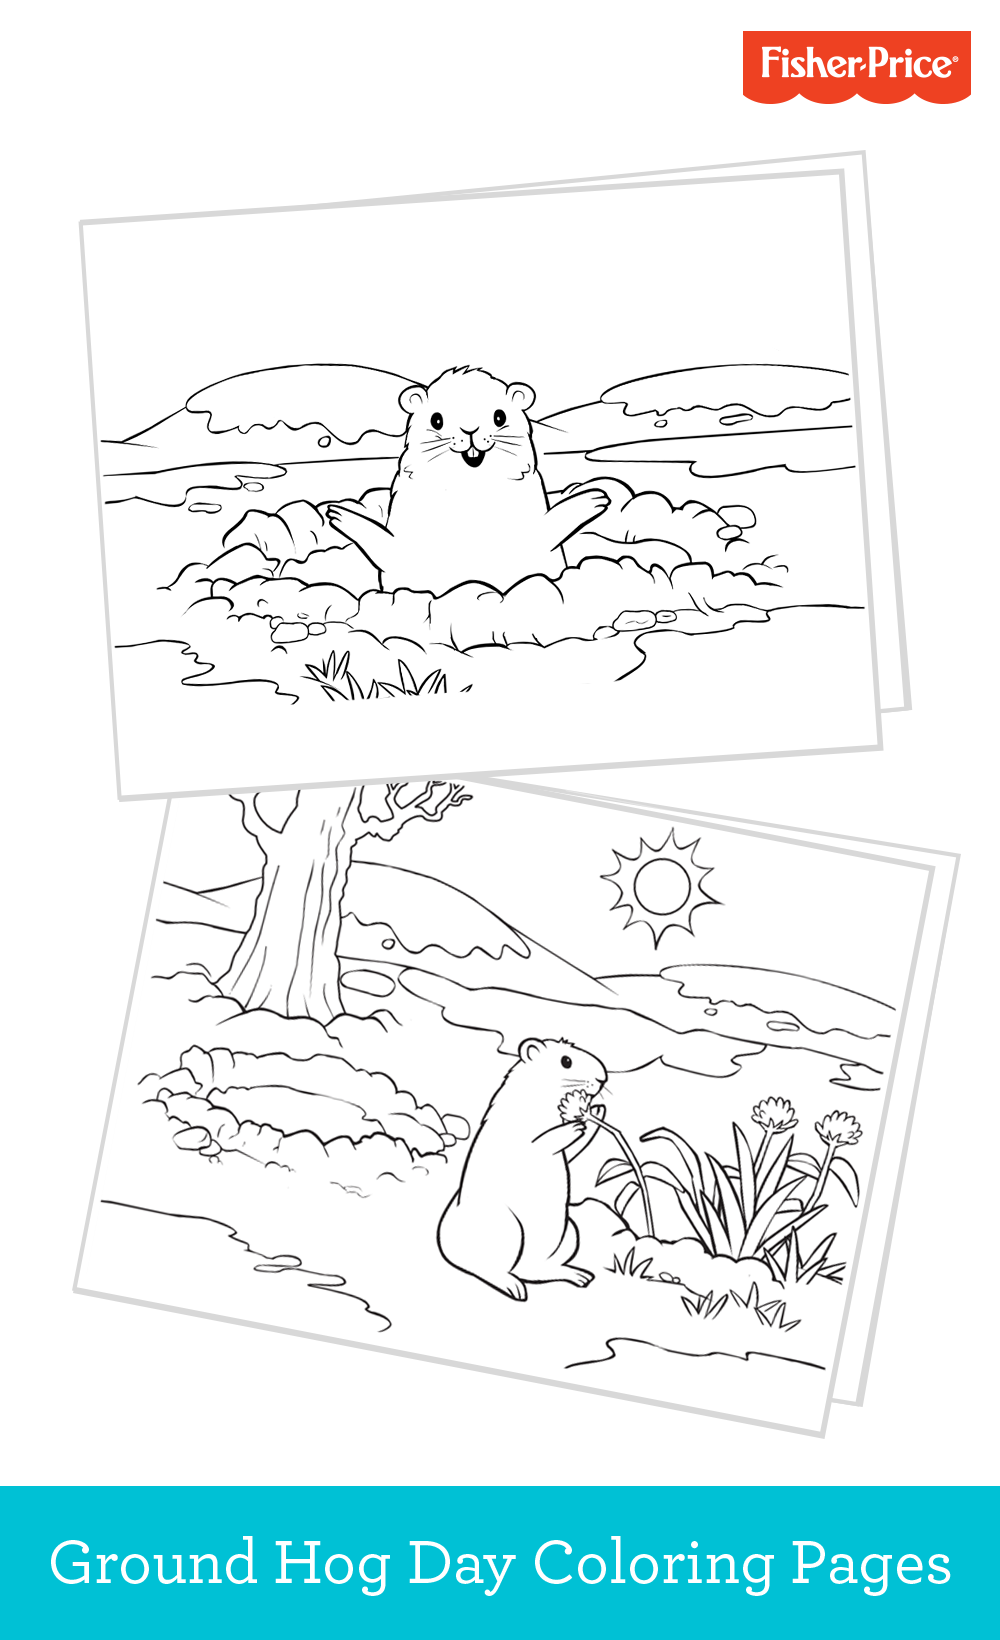 Check Out These Adorable Free Printables For Ground Hog Day Fun Find Even More At Fisher Price Com Cool Coloring Pages Coloring Pages For Kids Coloring Pages [ 1640 x 1000 Pixel ]